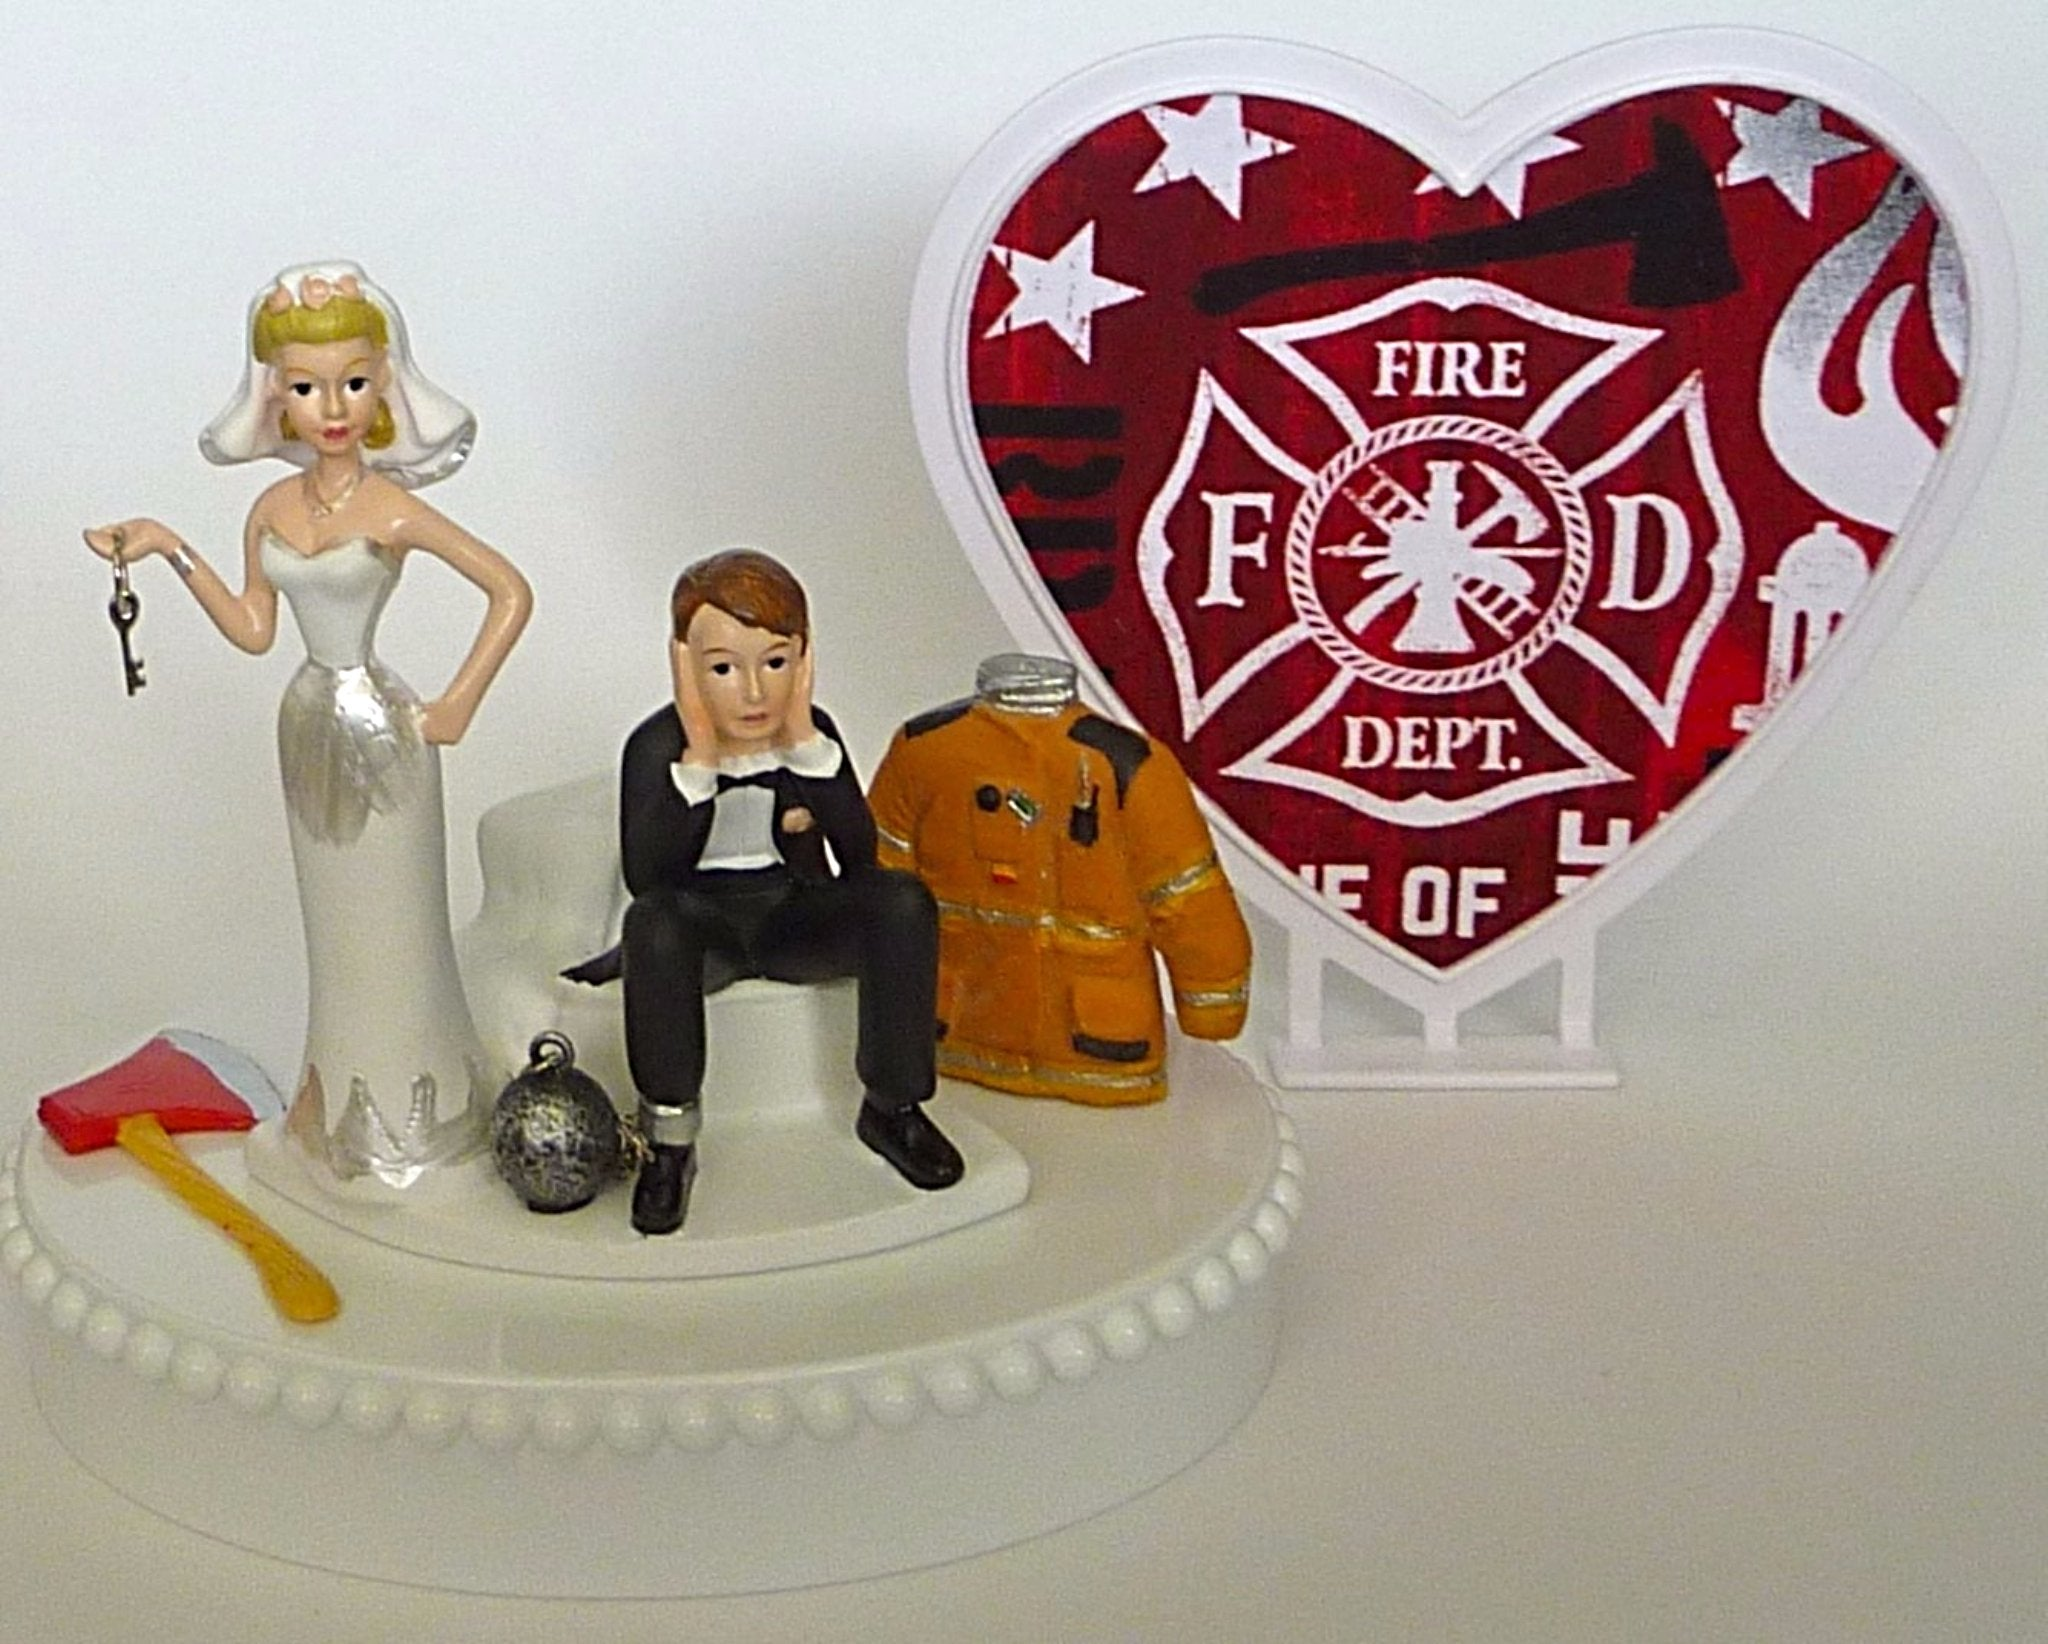 Firefighter wedding cake topper FunWeddingThings.com